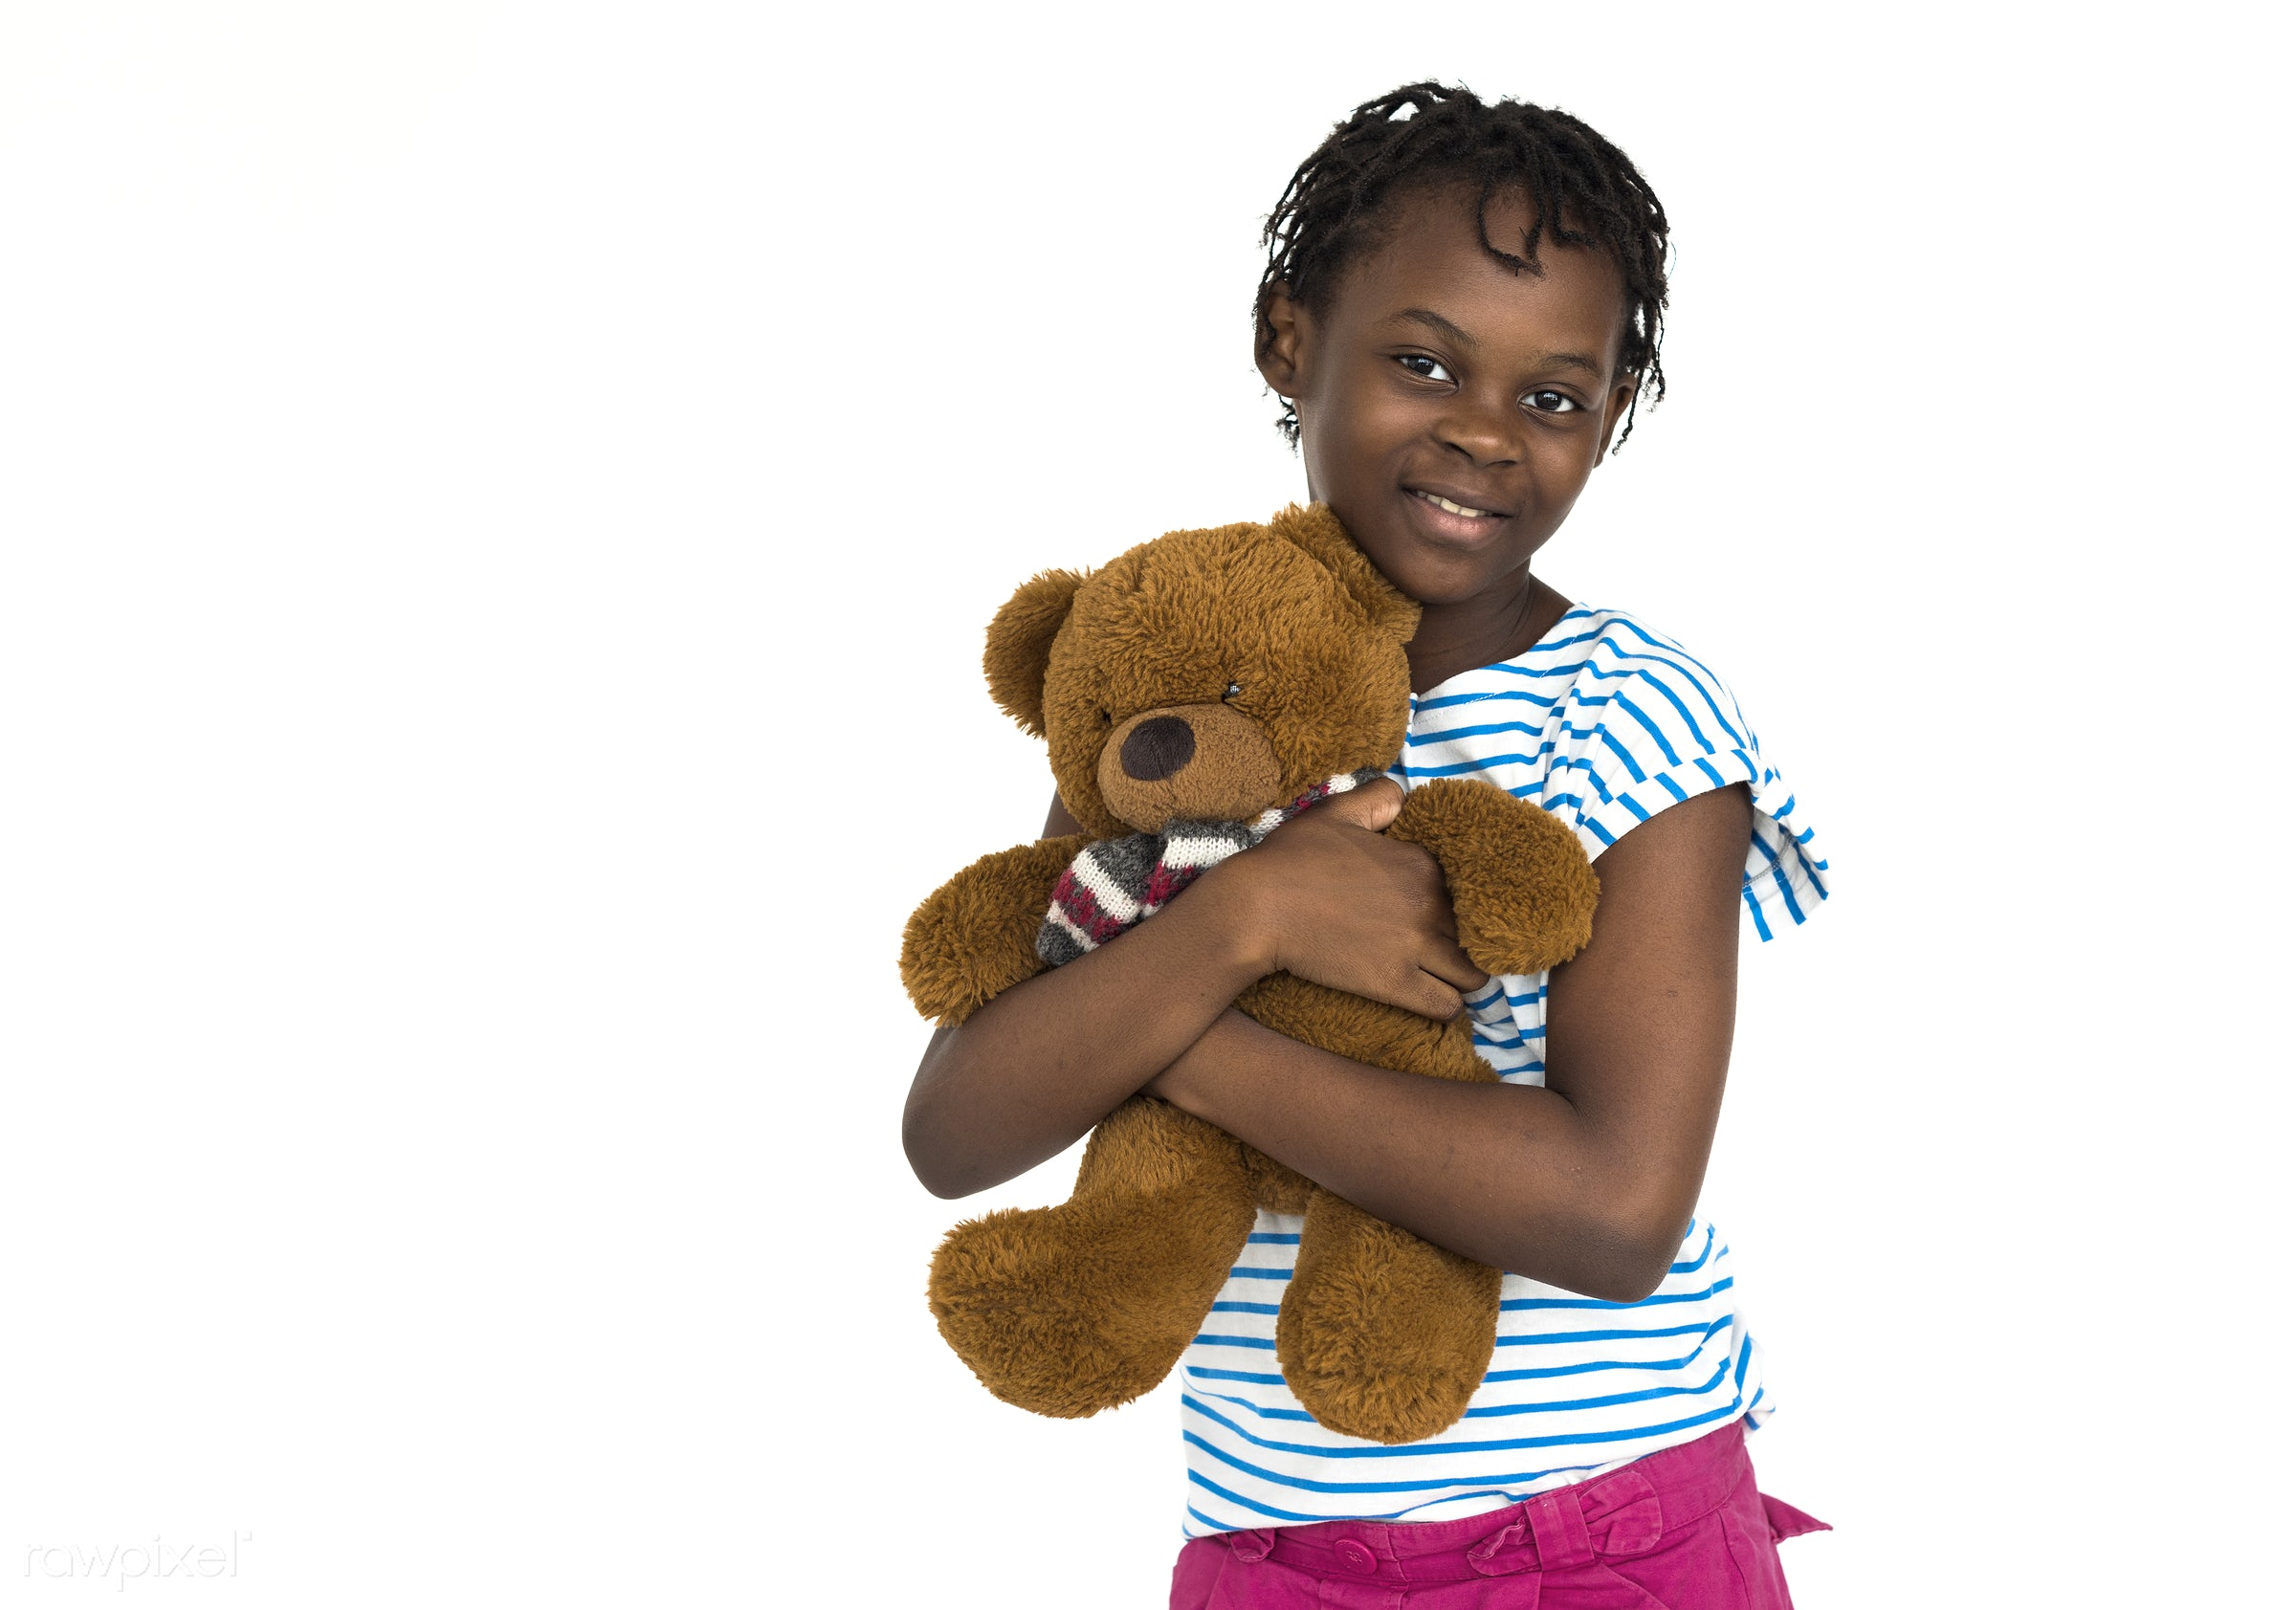 expression, studio, person, hug, holding, cuddle, kid, lifestyle, childhood, cheerful, smiling, isolated, african descent,...